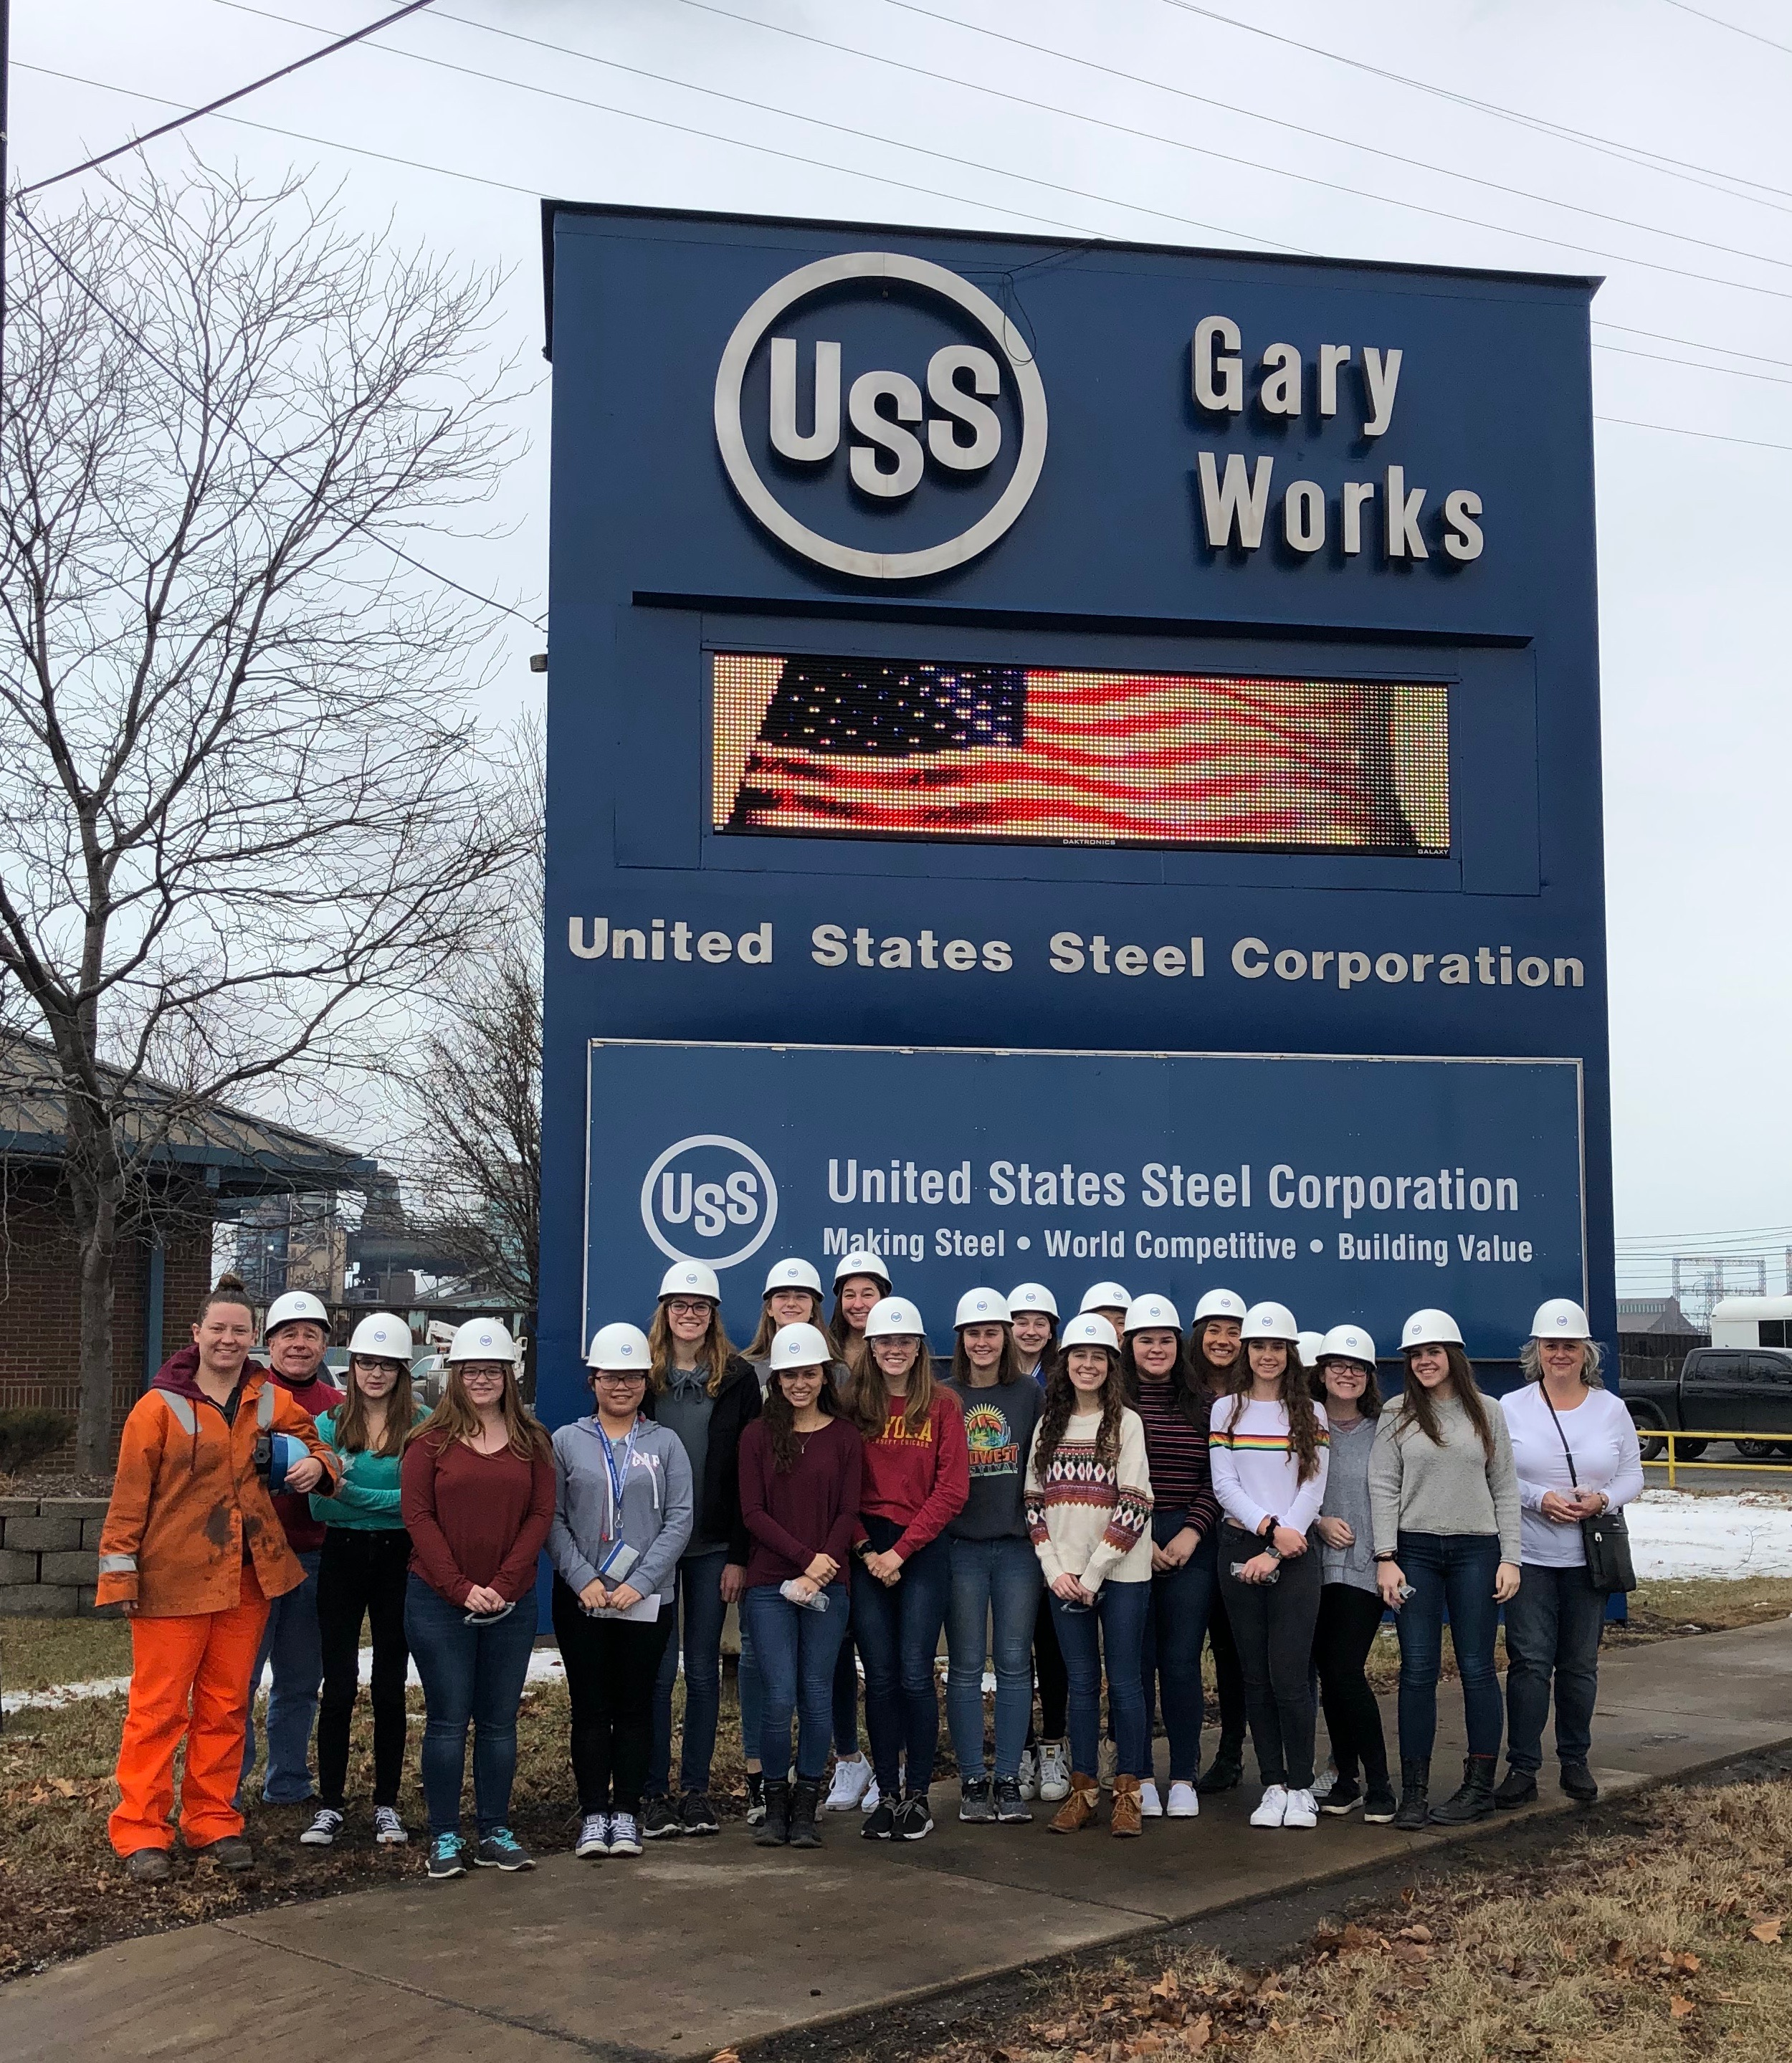 The Lake Central High School Women In Science and Engineering took their annual field trip to US Steel - Gary Works